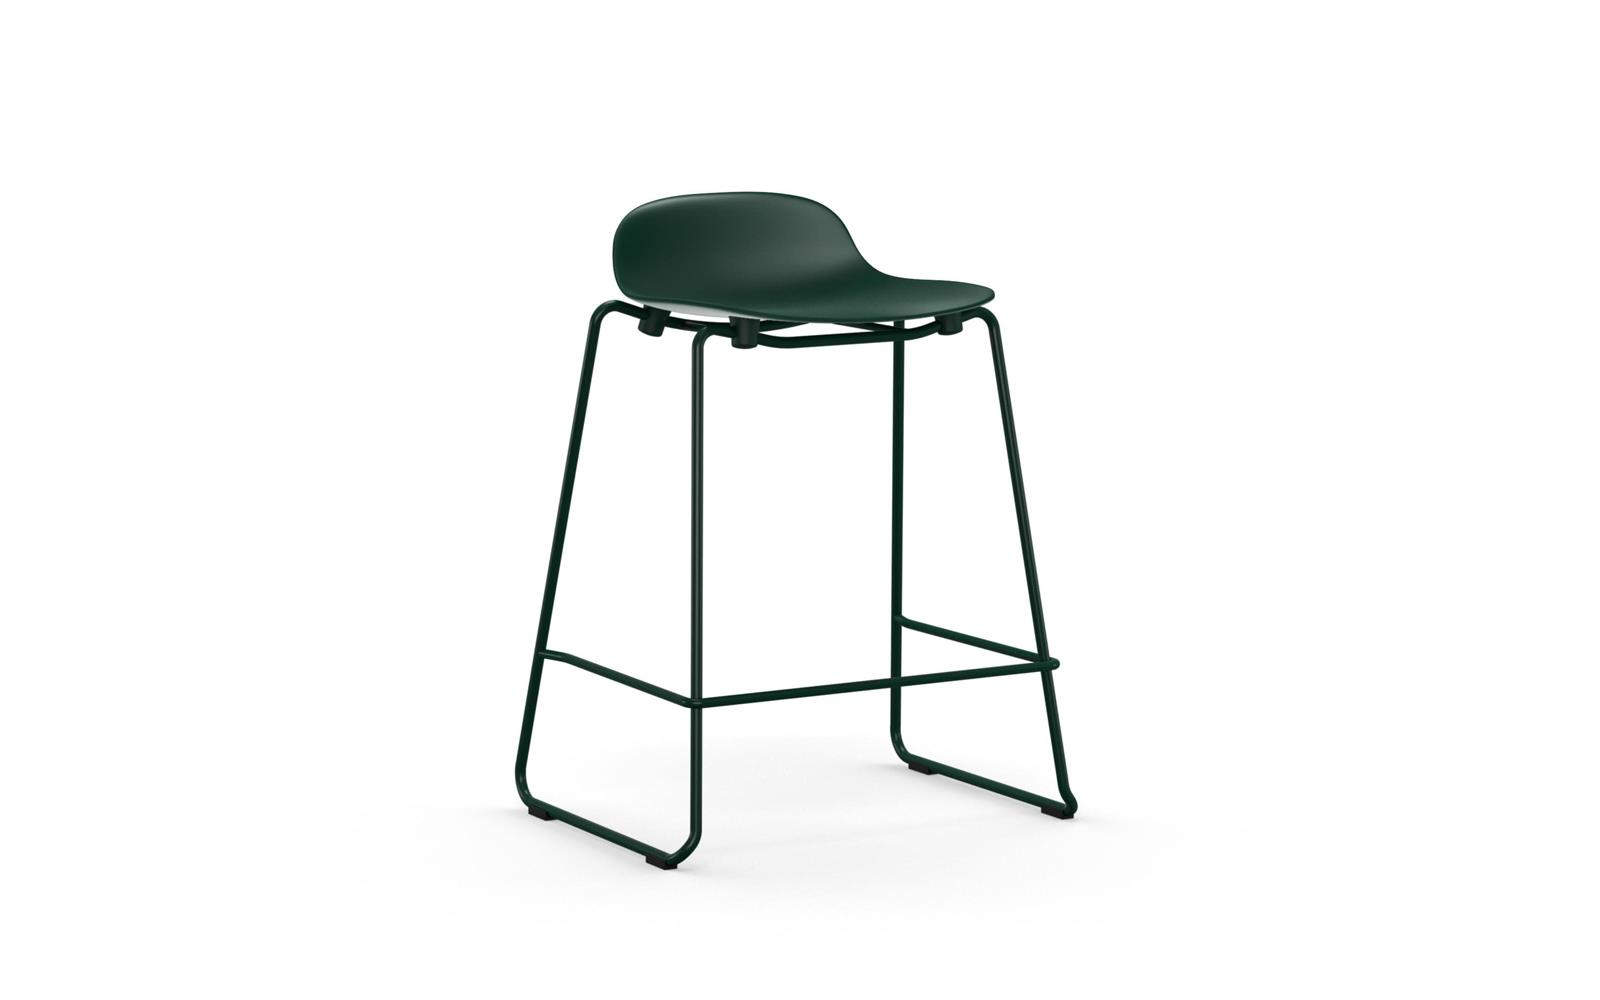 8b8947255baf Form stacking barstool 65 cm in stylish green | Buy it online here